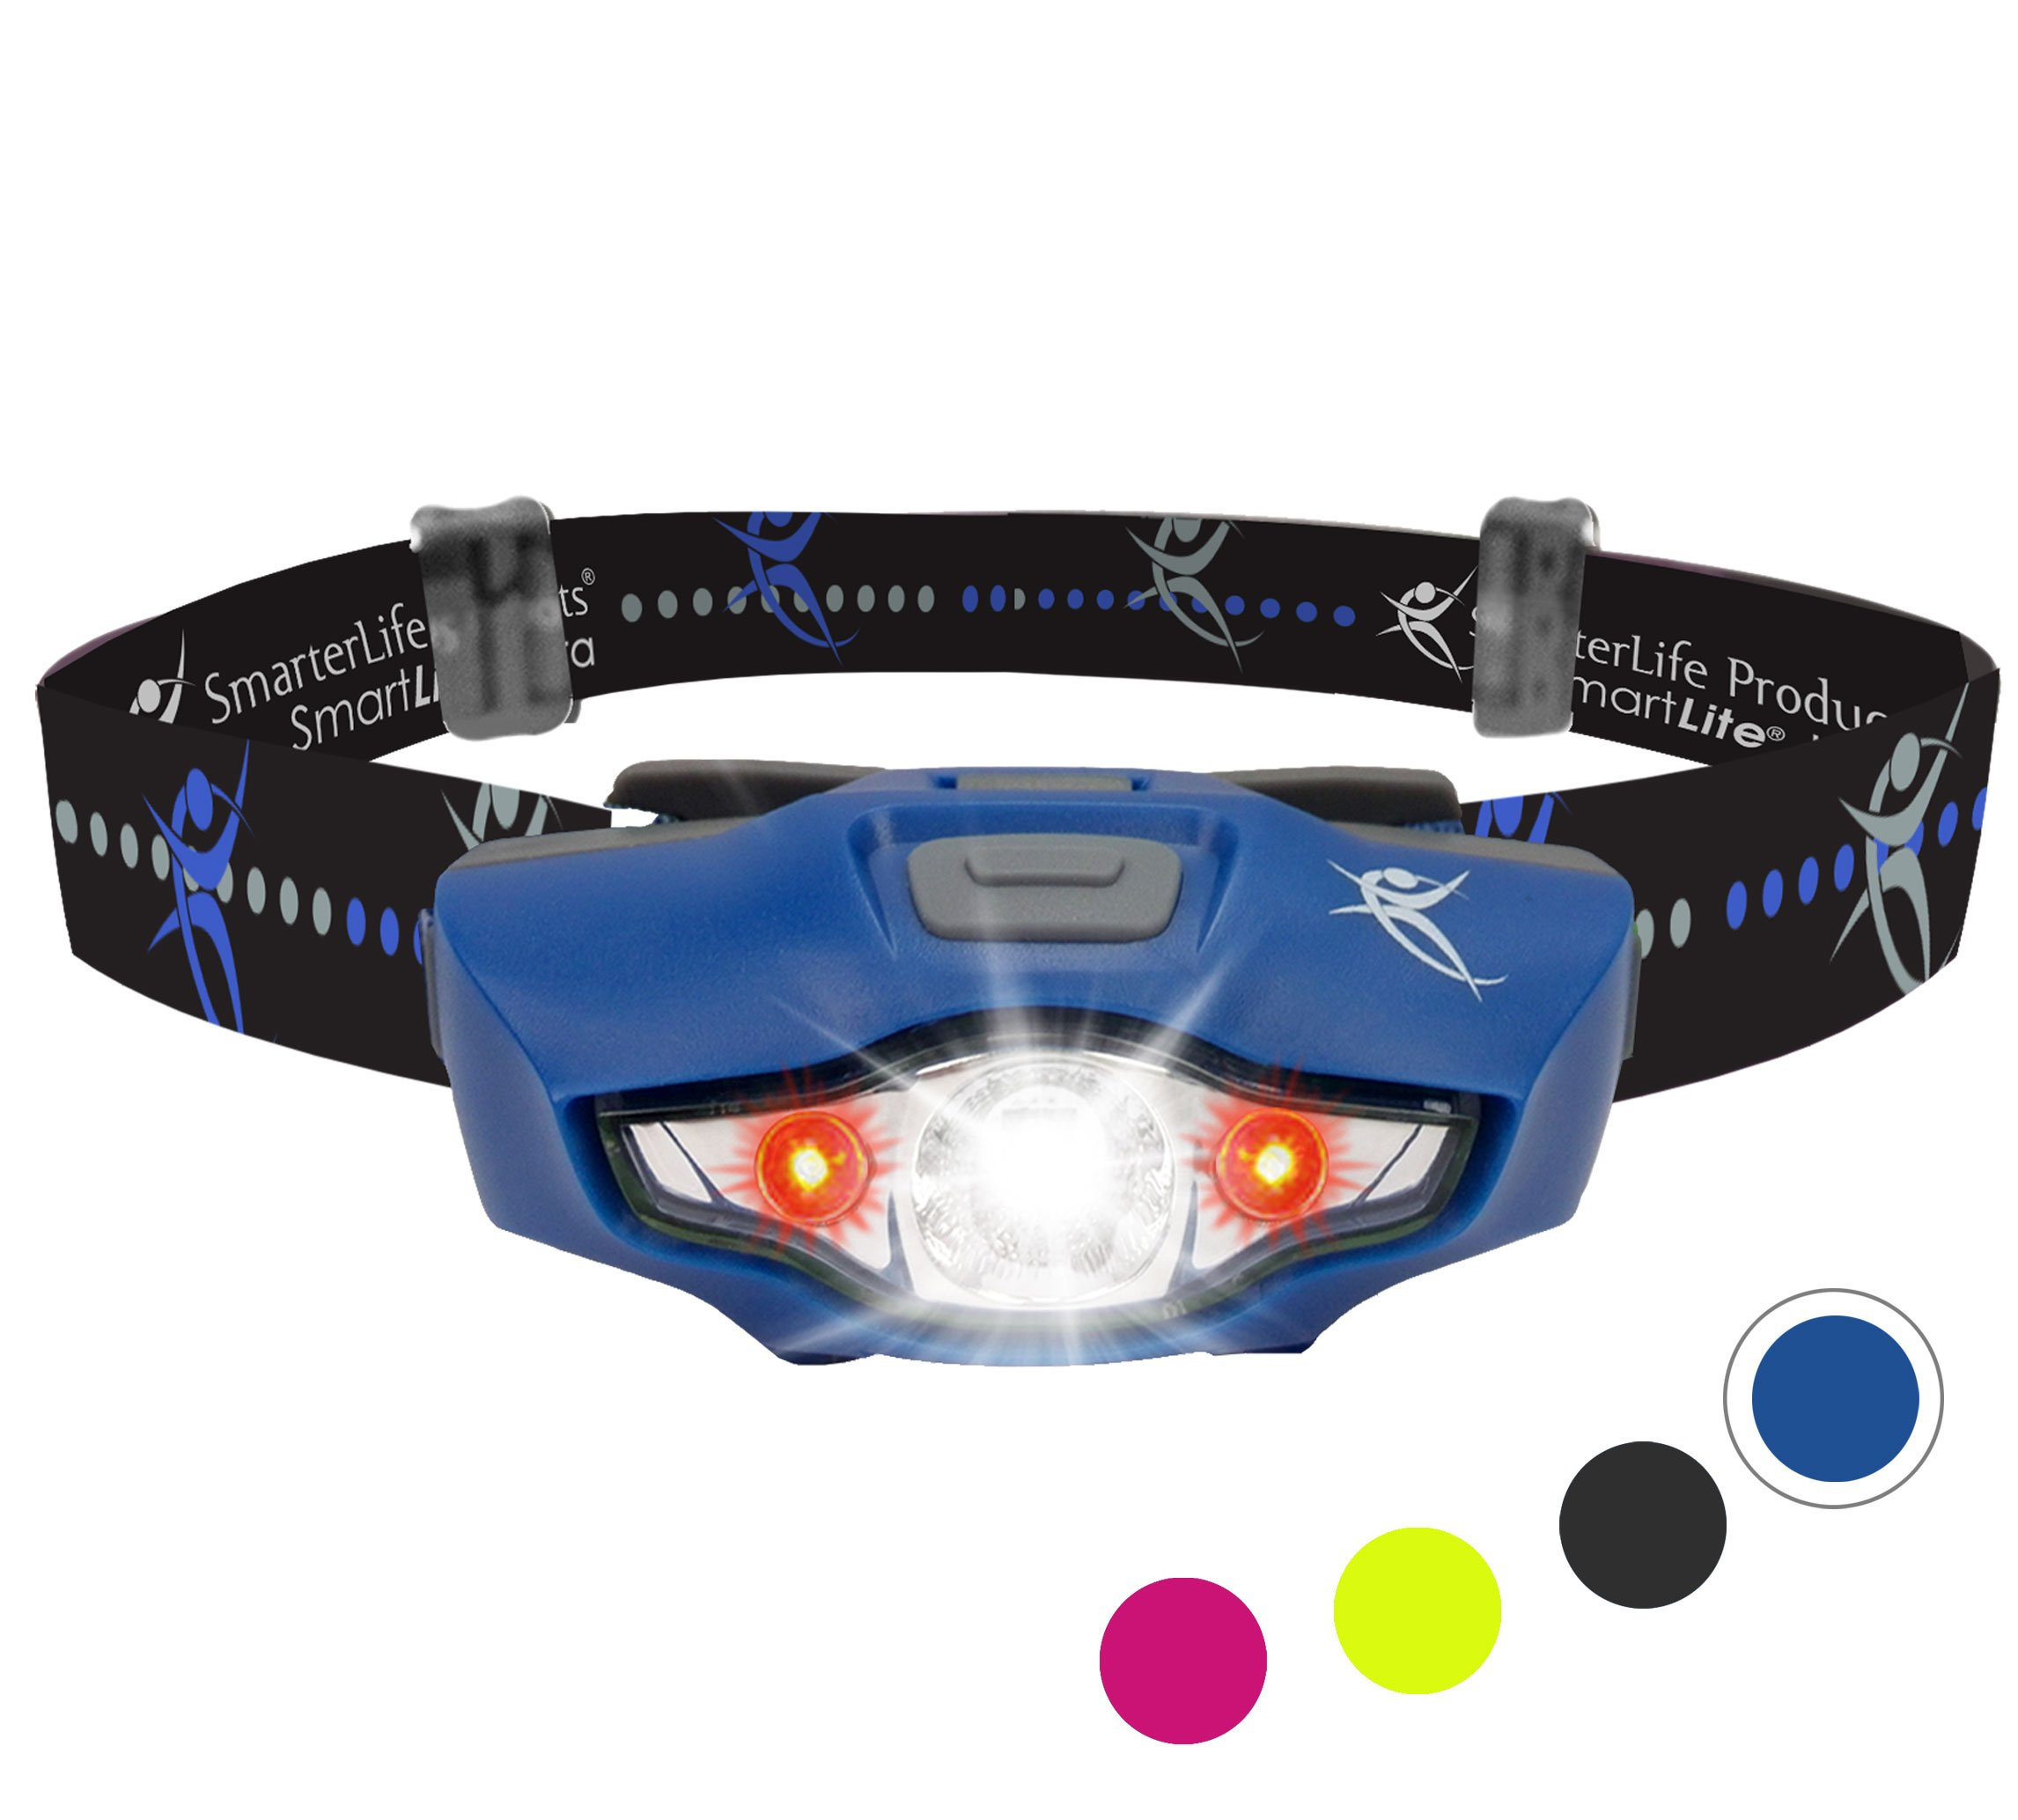 Best Headlamp Of 2018: The Ultimate Guide - Headlamp Reviews